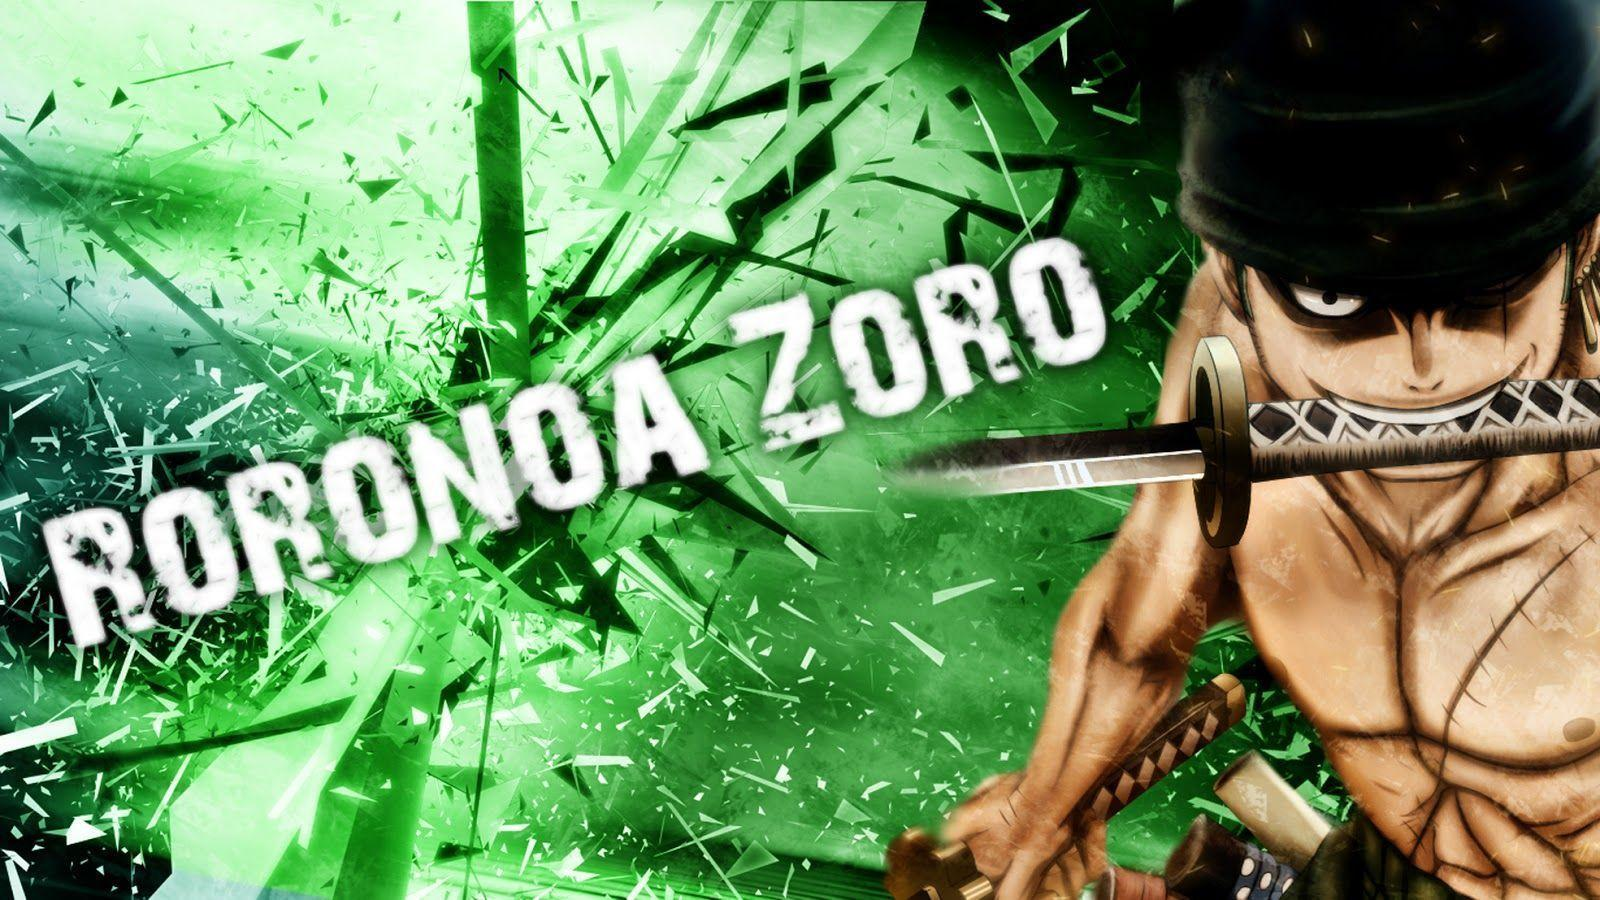 zoronoa zoro wallpaper computer - photo #25